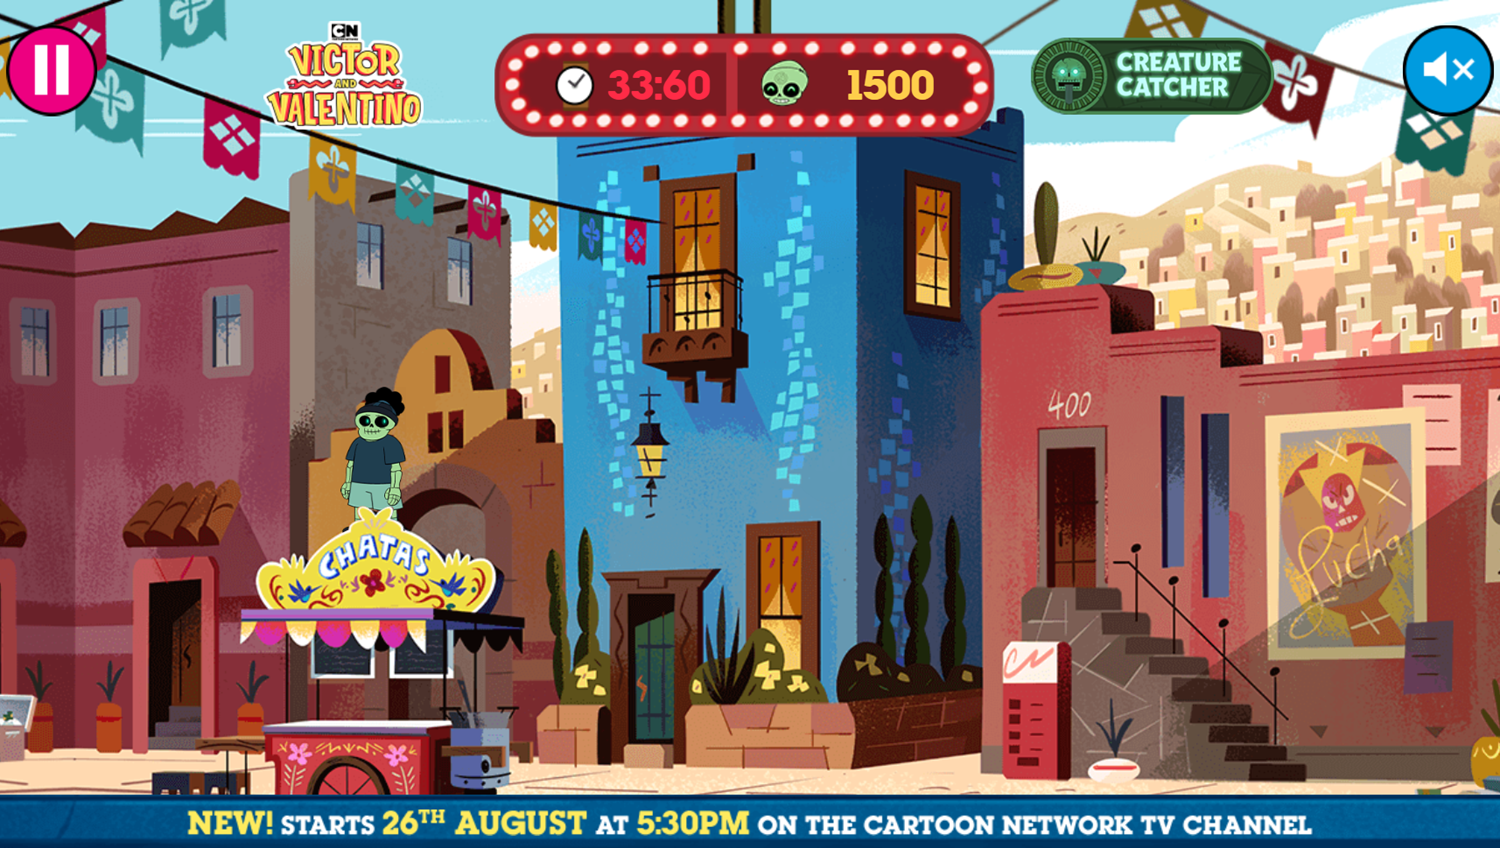 Victor and Valentino Mission to Monte Macabre Case Game Creature Catcher Gameplay Screenshot.